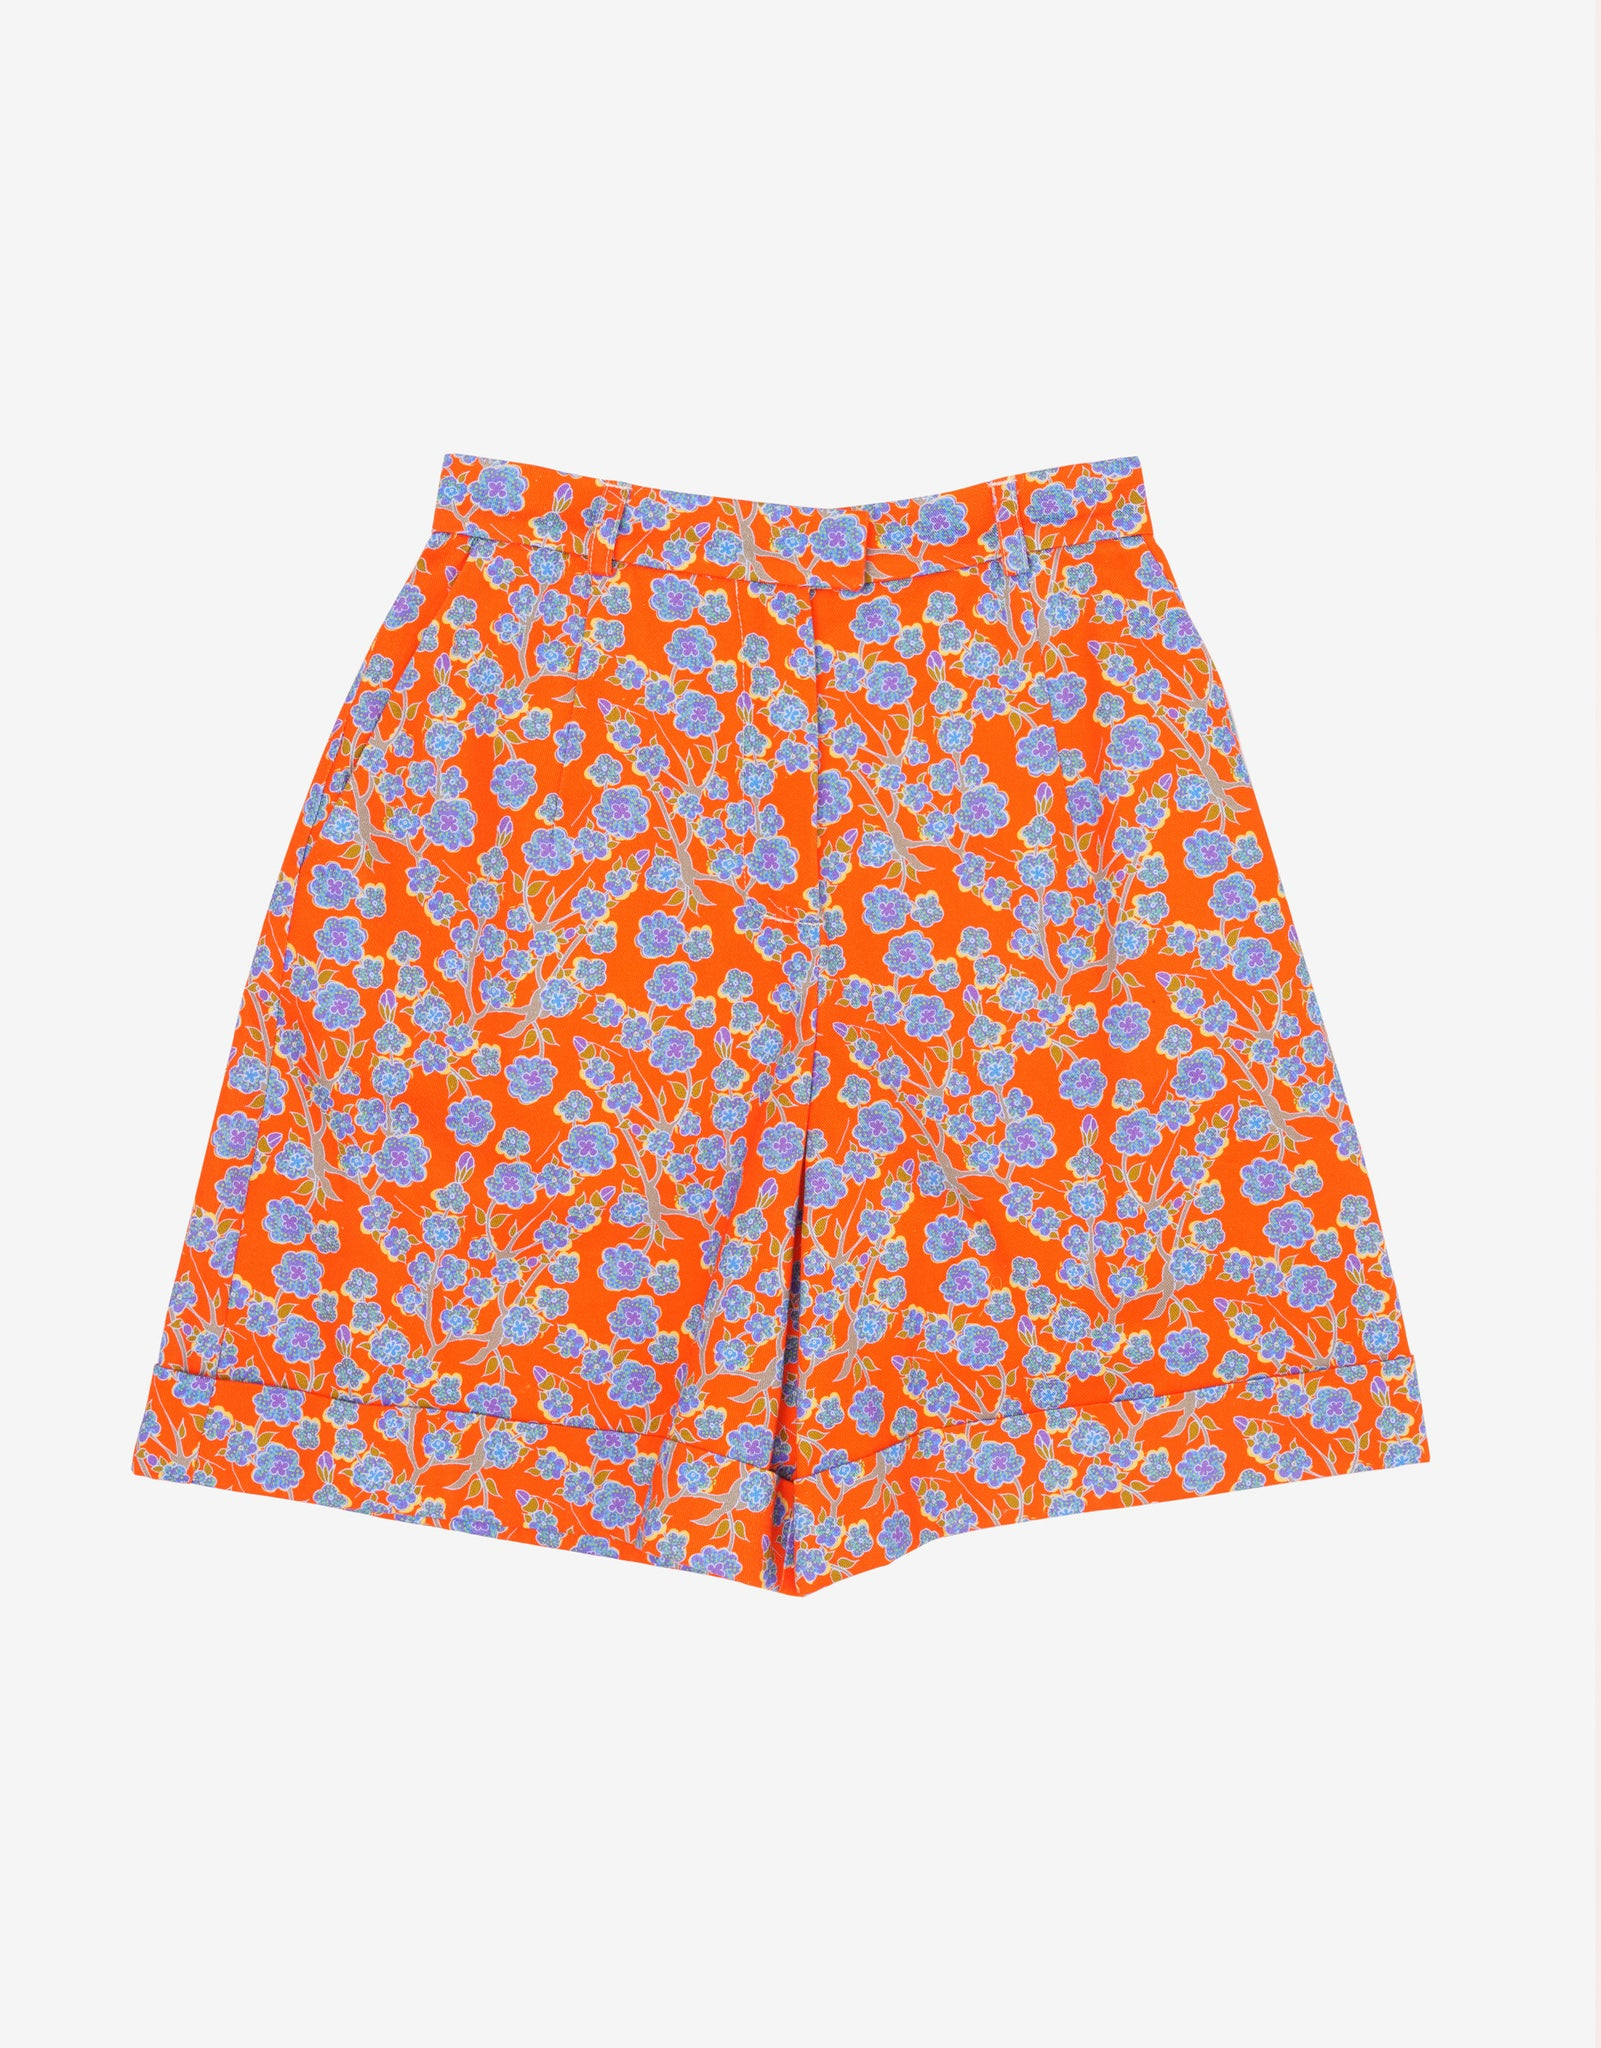 Crimson Rose cotton drill culottes with orange and blue floral print. Photography Rowan Corr.